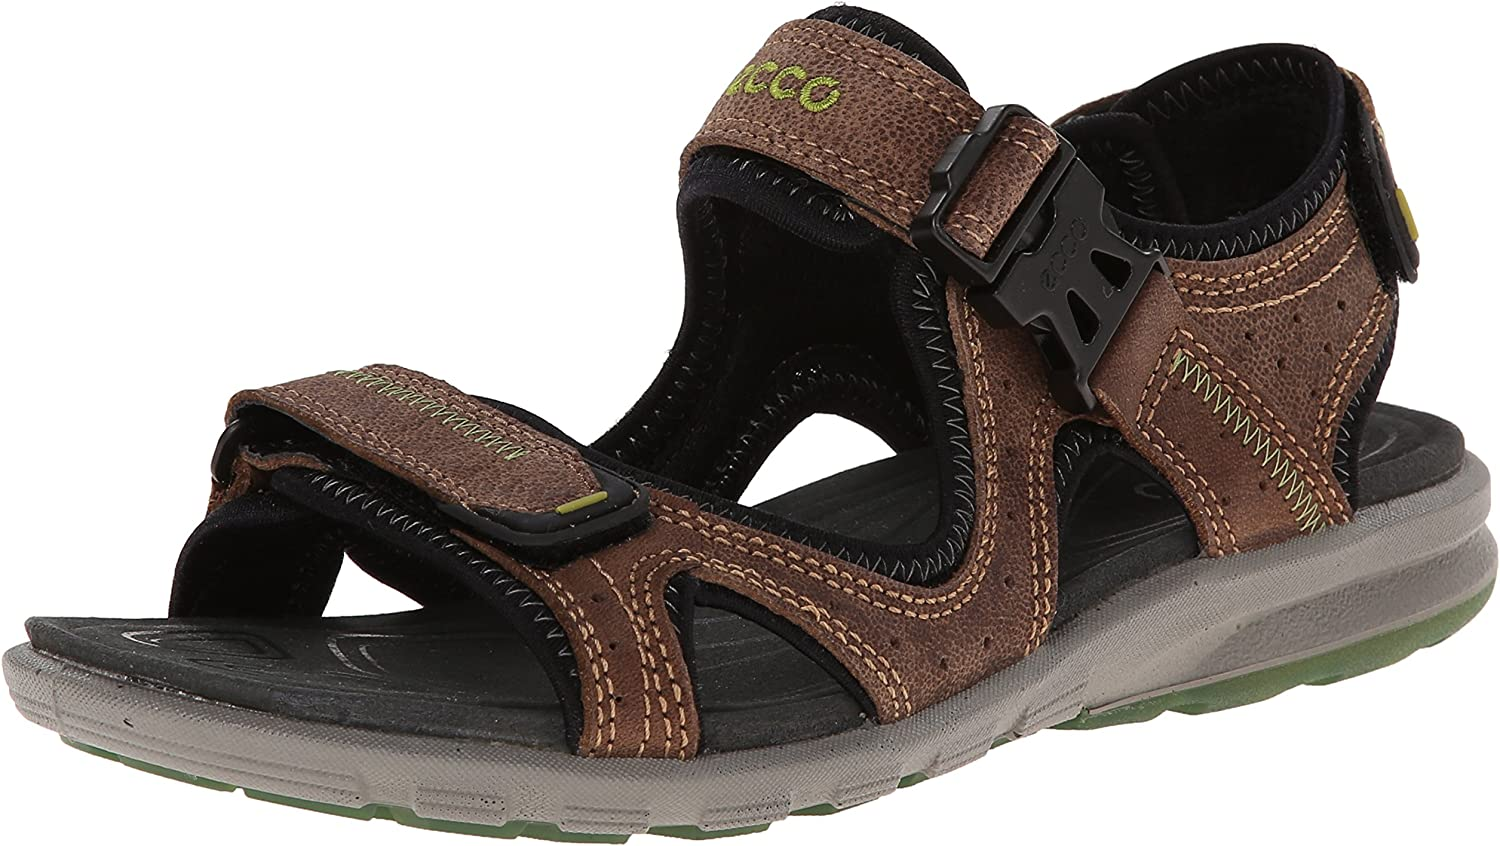 ECCO Cruise, Men's Athletic & Outdoor Sandals, Braun